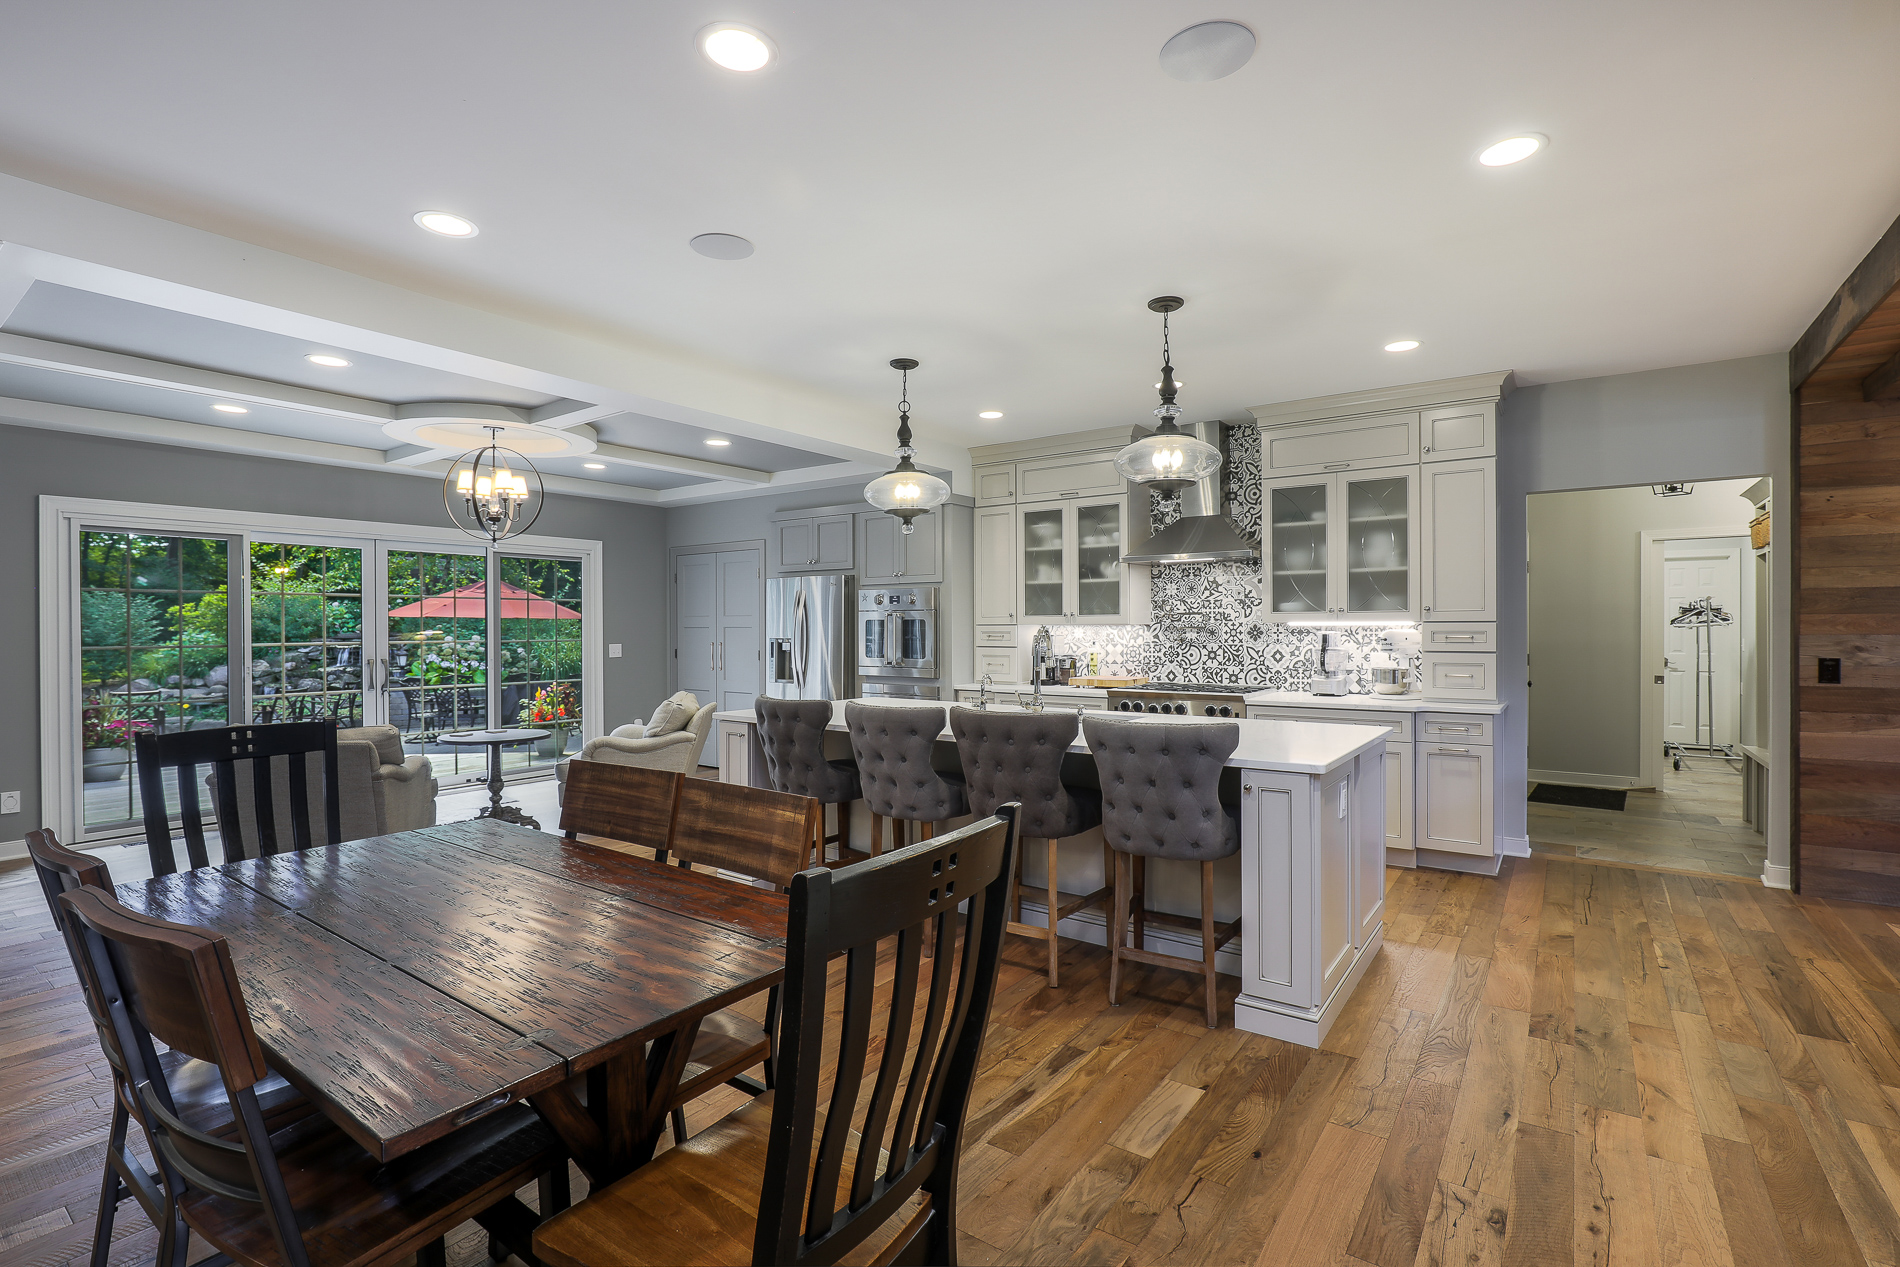 Alair-Homes-Cuyahoga-Falls-Making-Multigenerational-Living-a-Success-in-your-home-Kitchen-